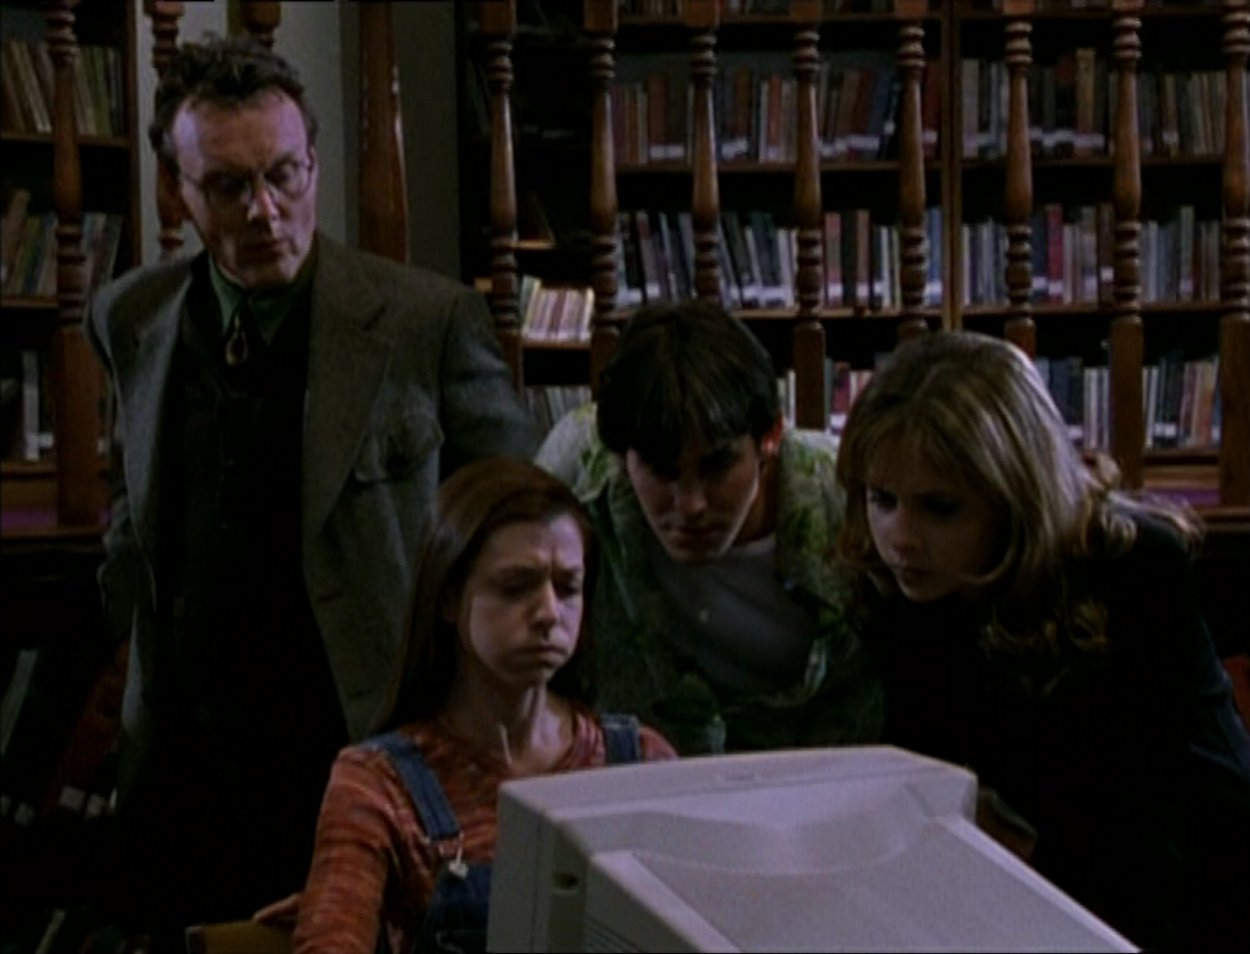 Giles, Willow, Xander and Buffy research in the library